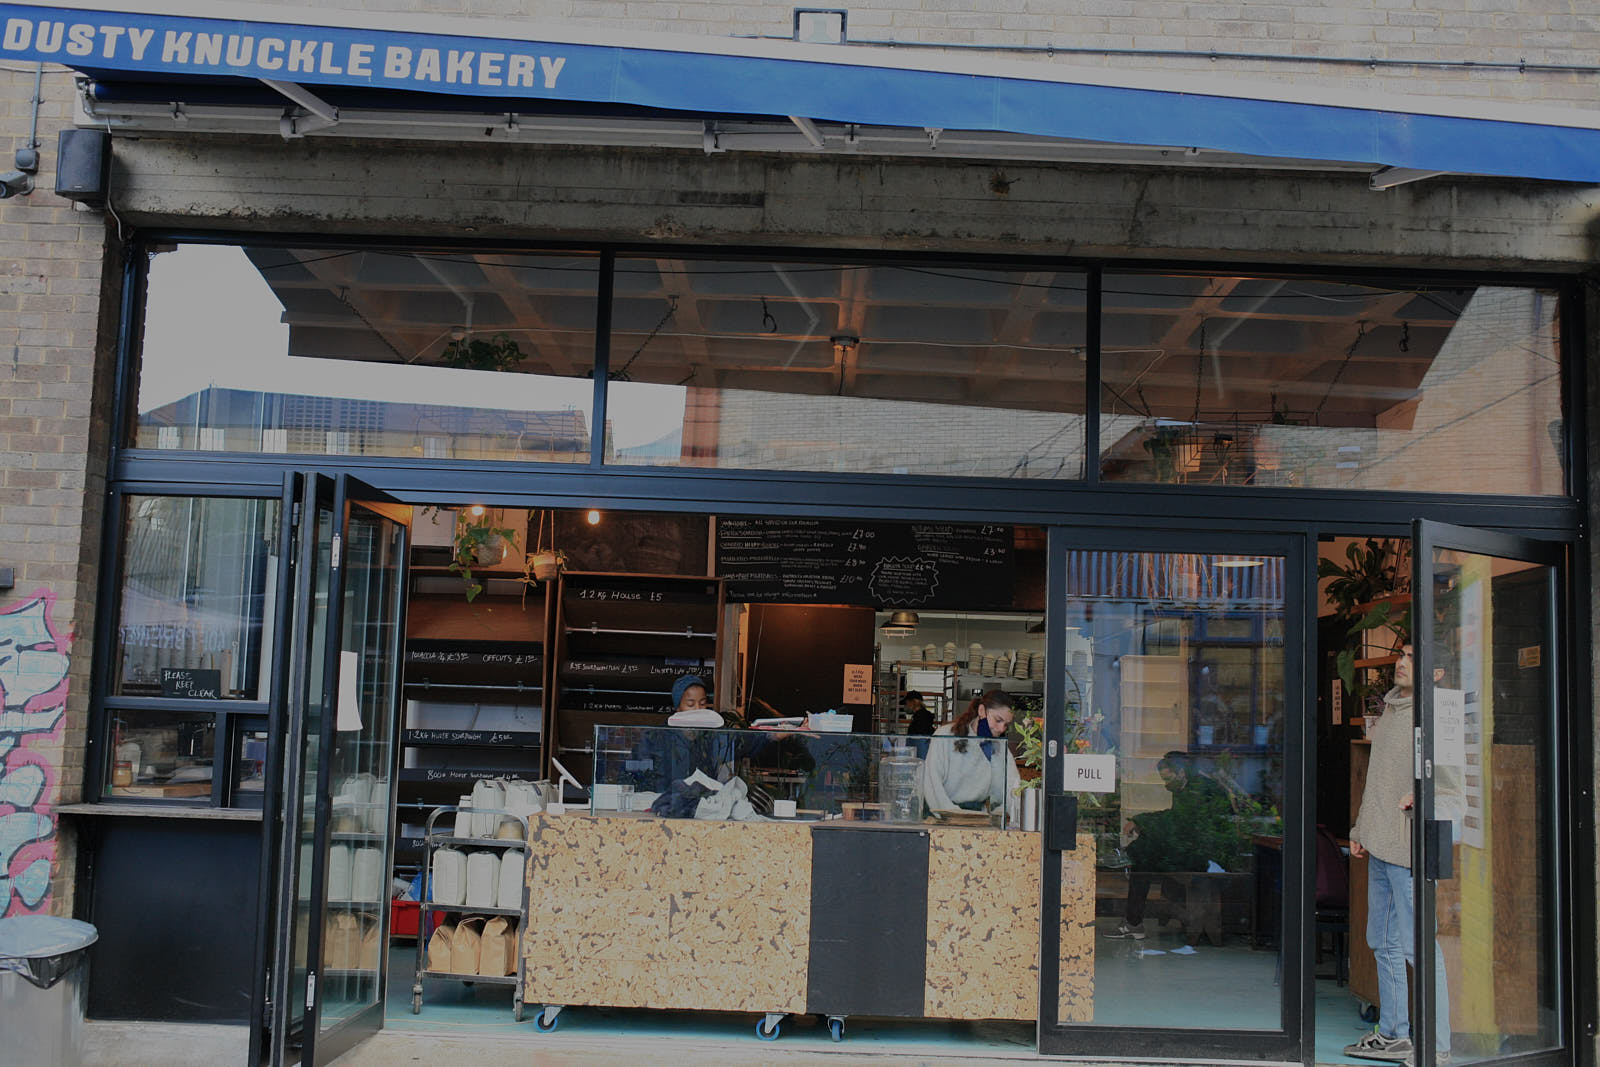 Dusty Knuckle bakery in Dalston on the eve of national coronavirus lockdown in England